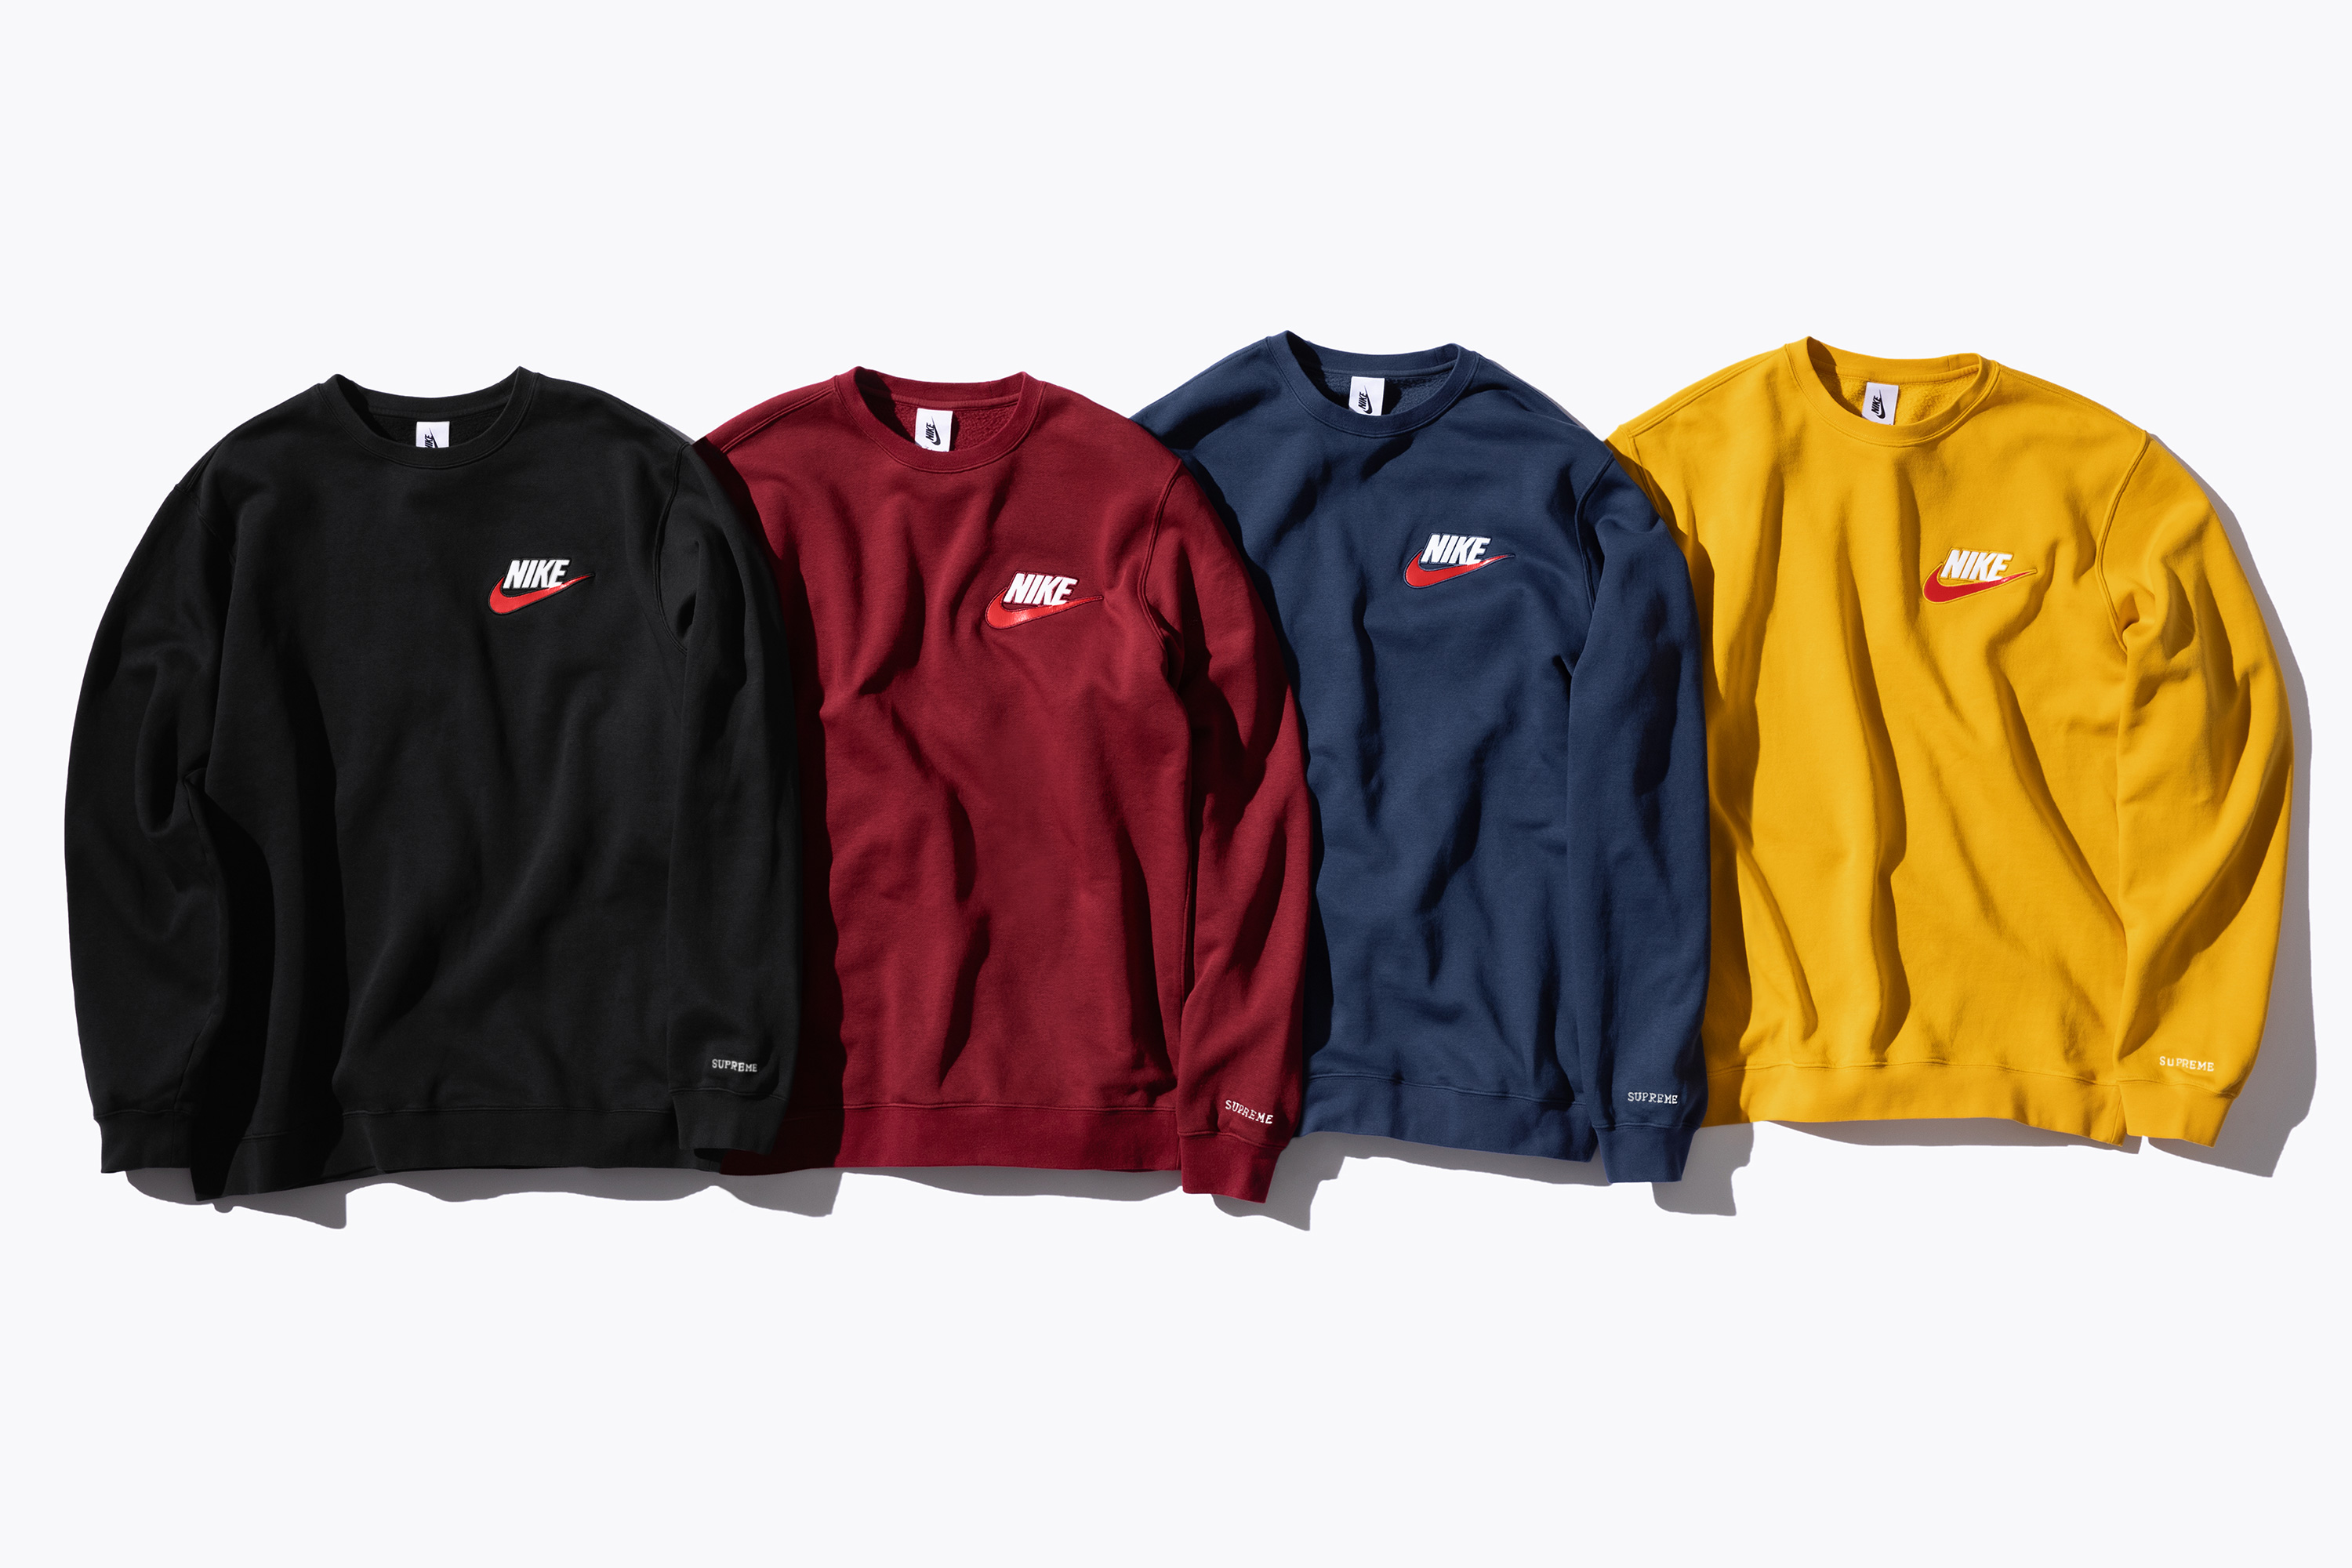 1b93c30e The Supreme x Nike FW'18 collection arrives online and at the NY, LA,  London, and Paris locations beginning this Thursday (September 27), ...